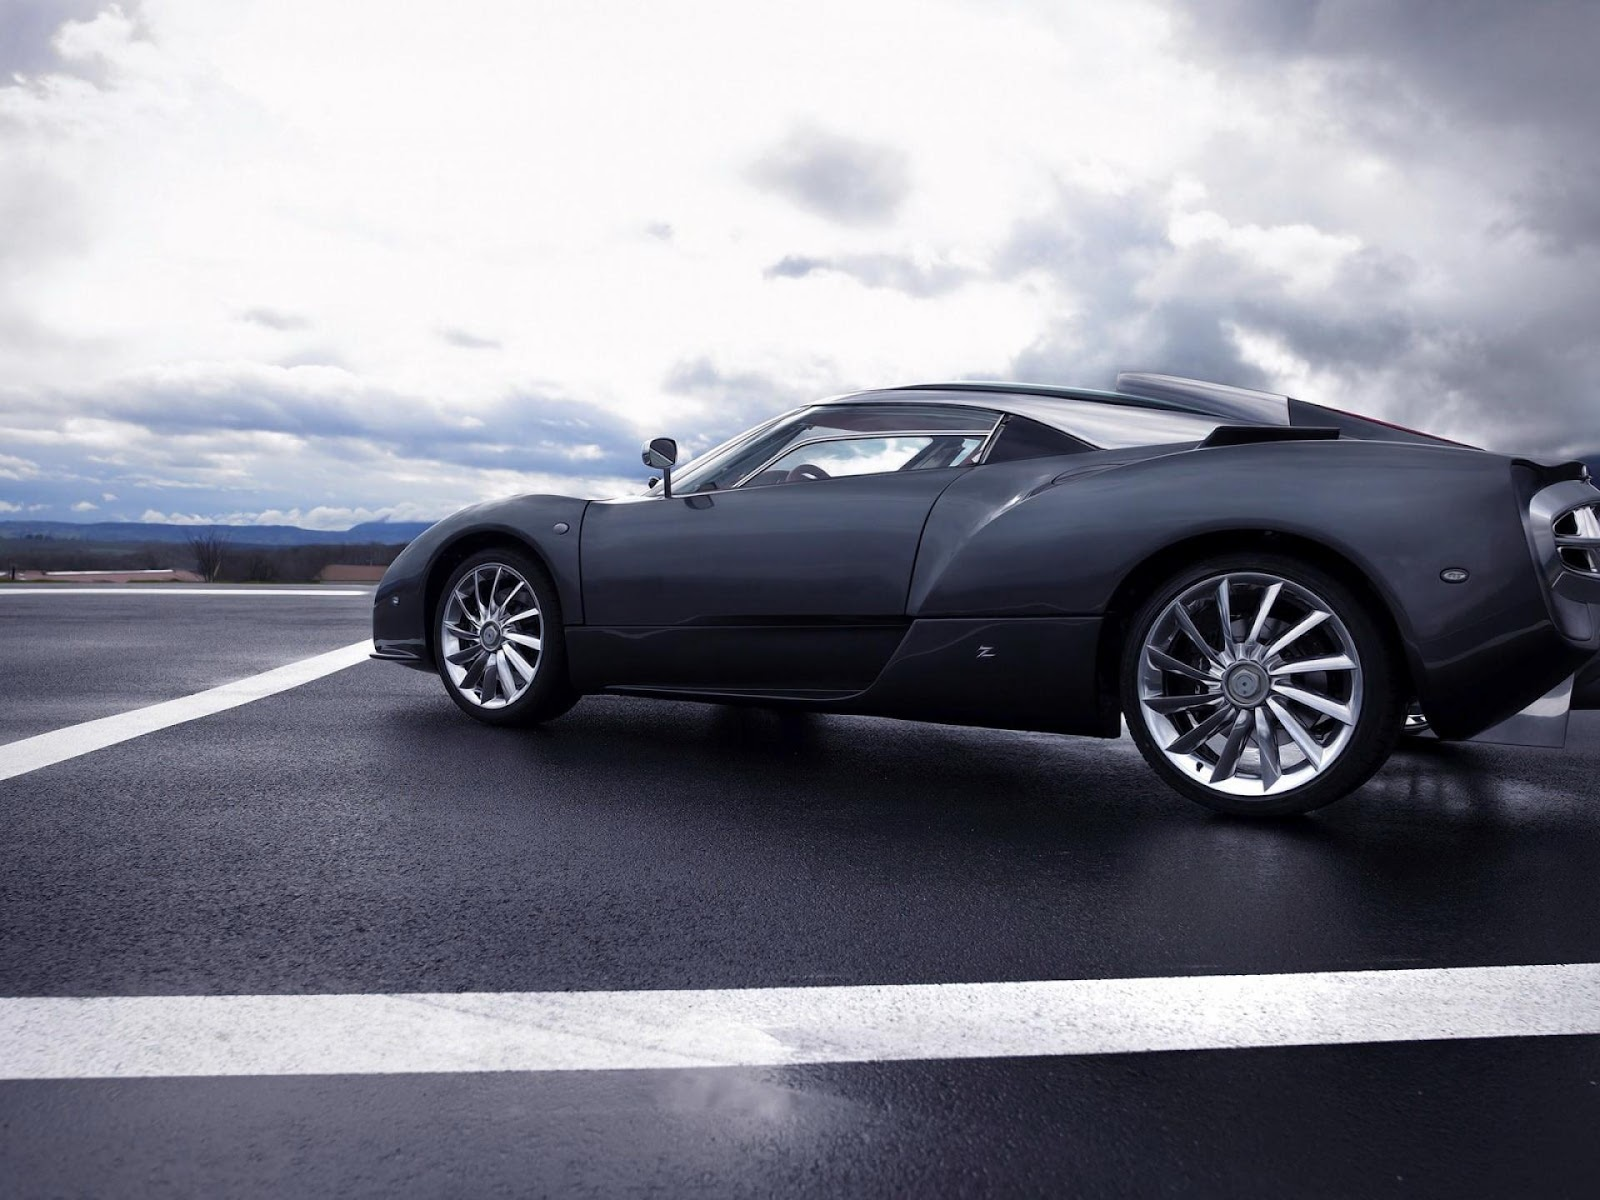 cars wallpapers 2012 super speed demon bugatti veyron 16. Black Bedroom Furniture Sets. Home Design Ideas